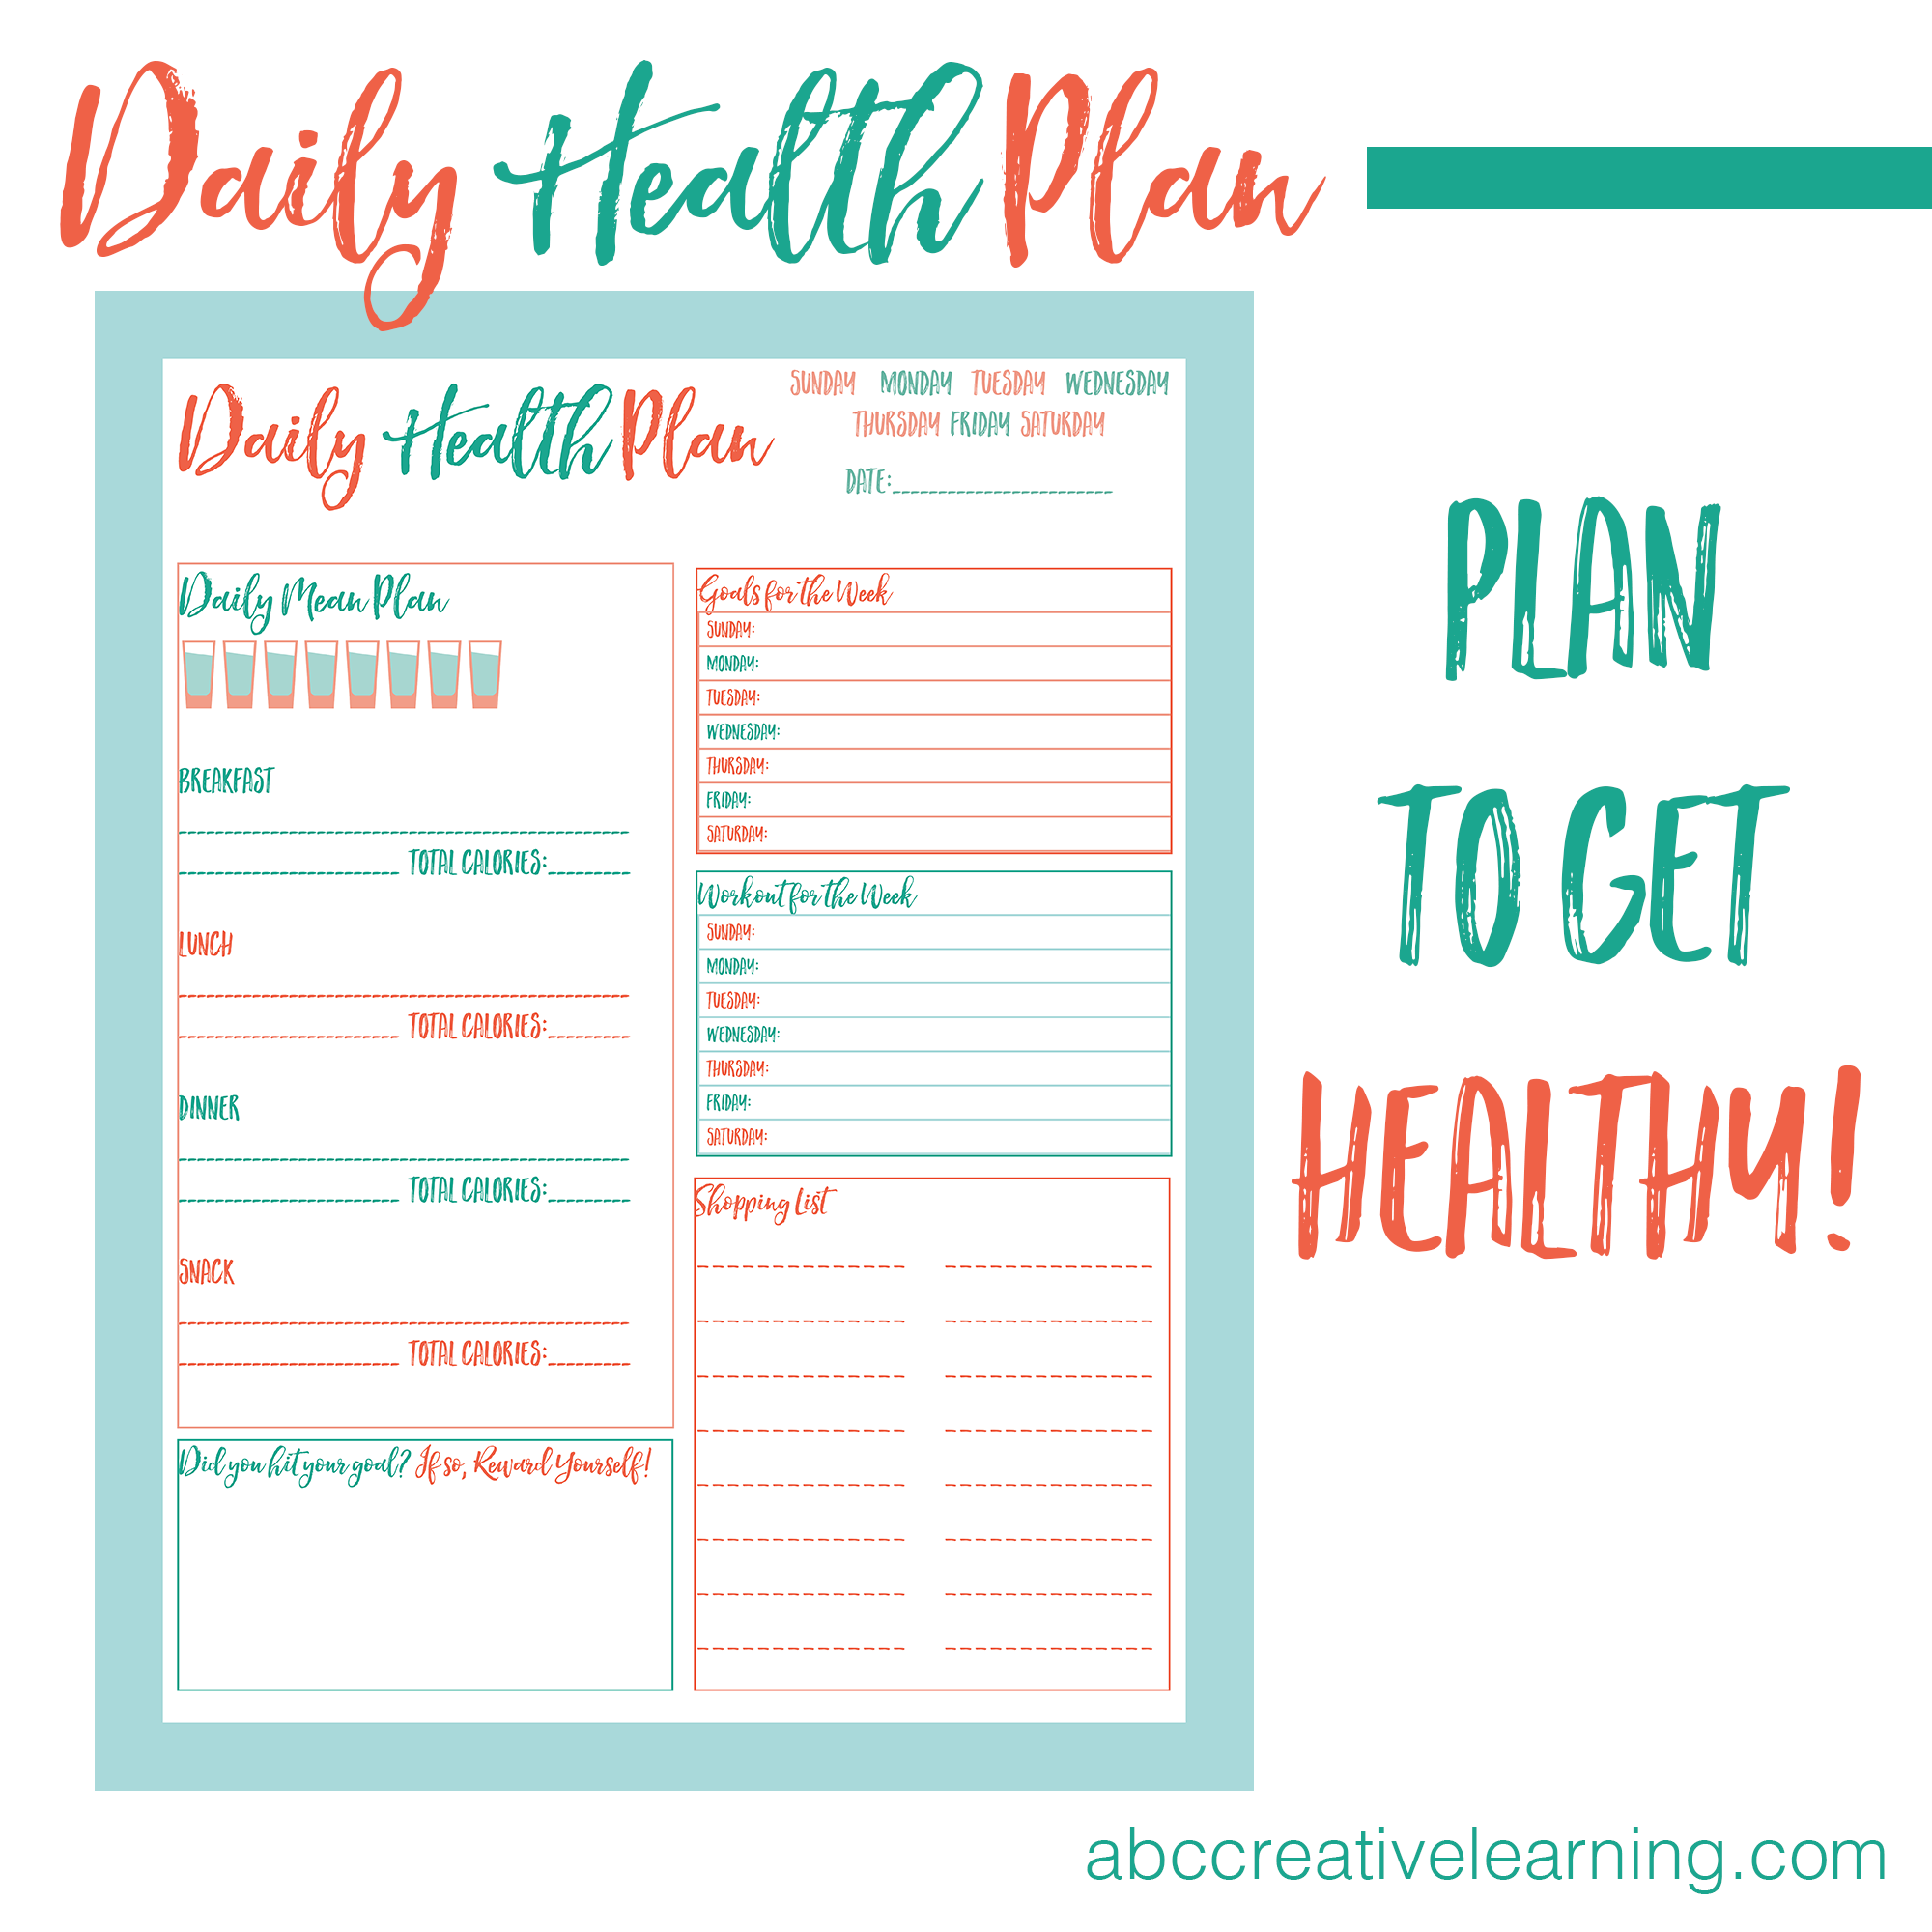 Daily Health Plan Printable Abc Creative Learning